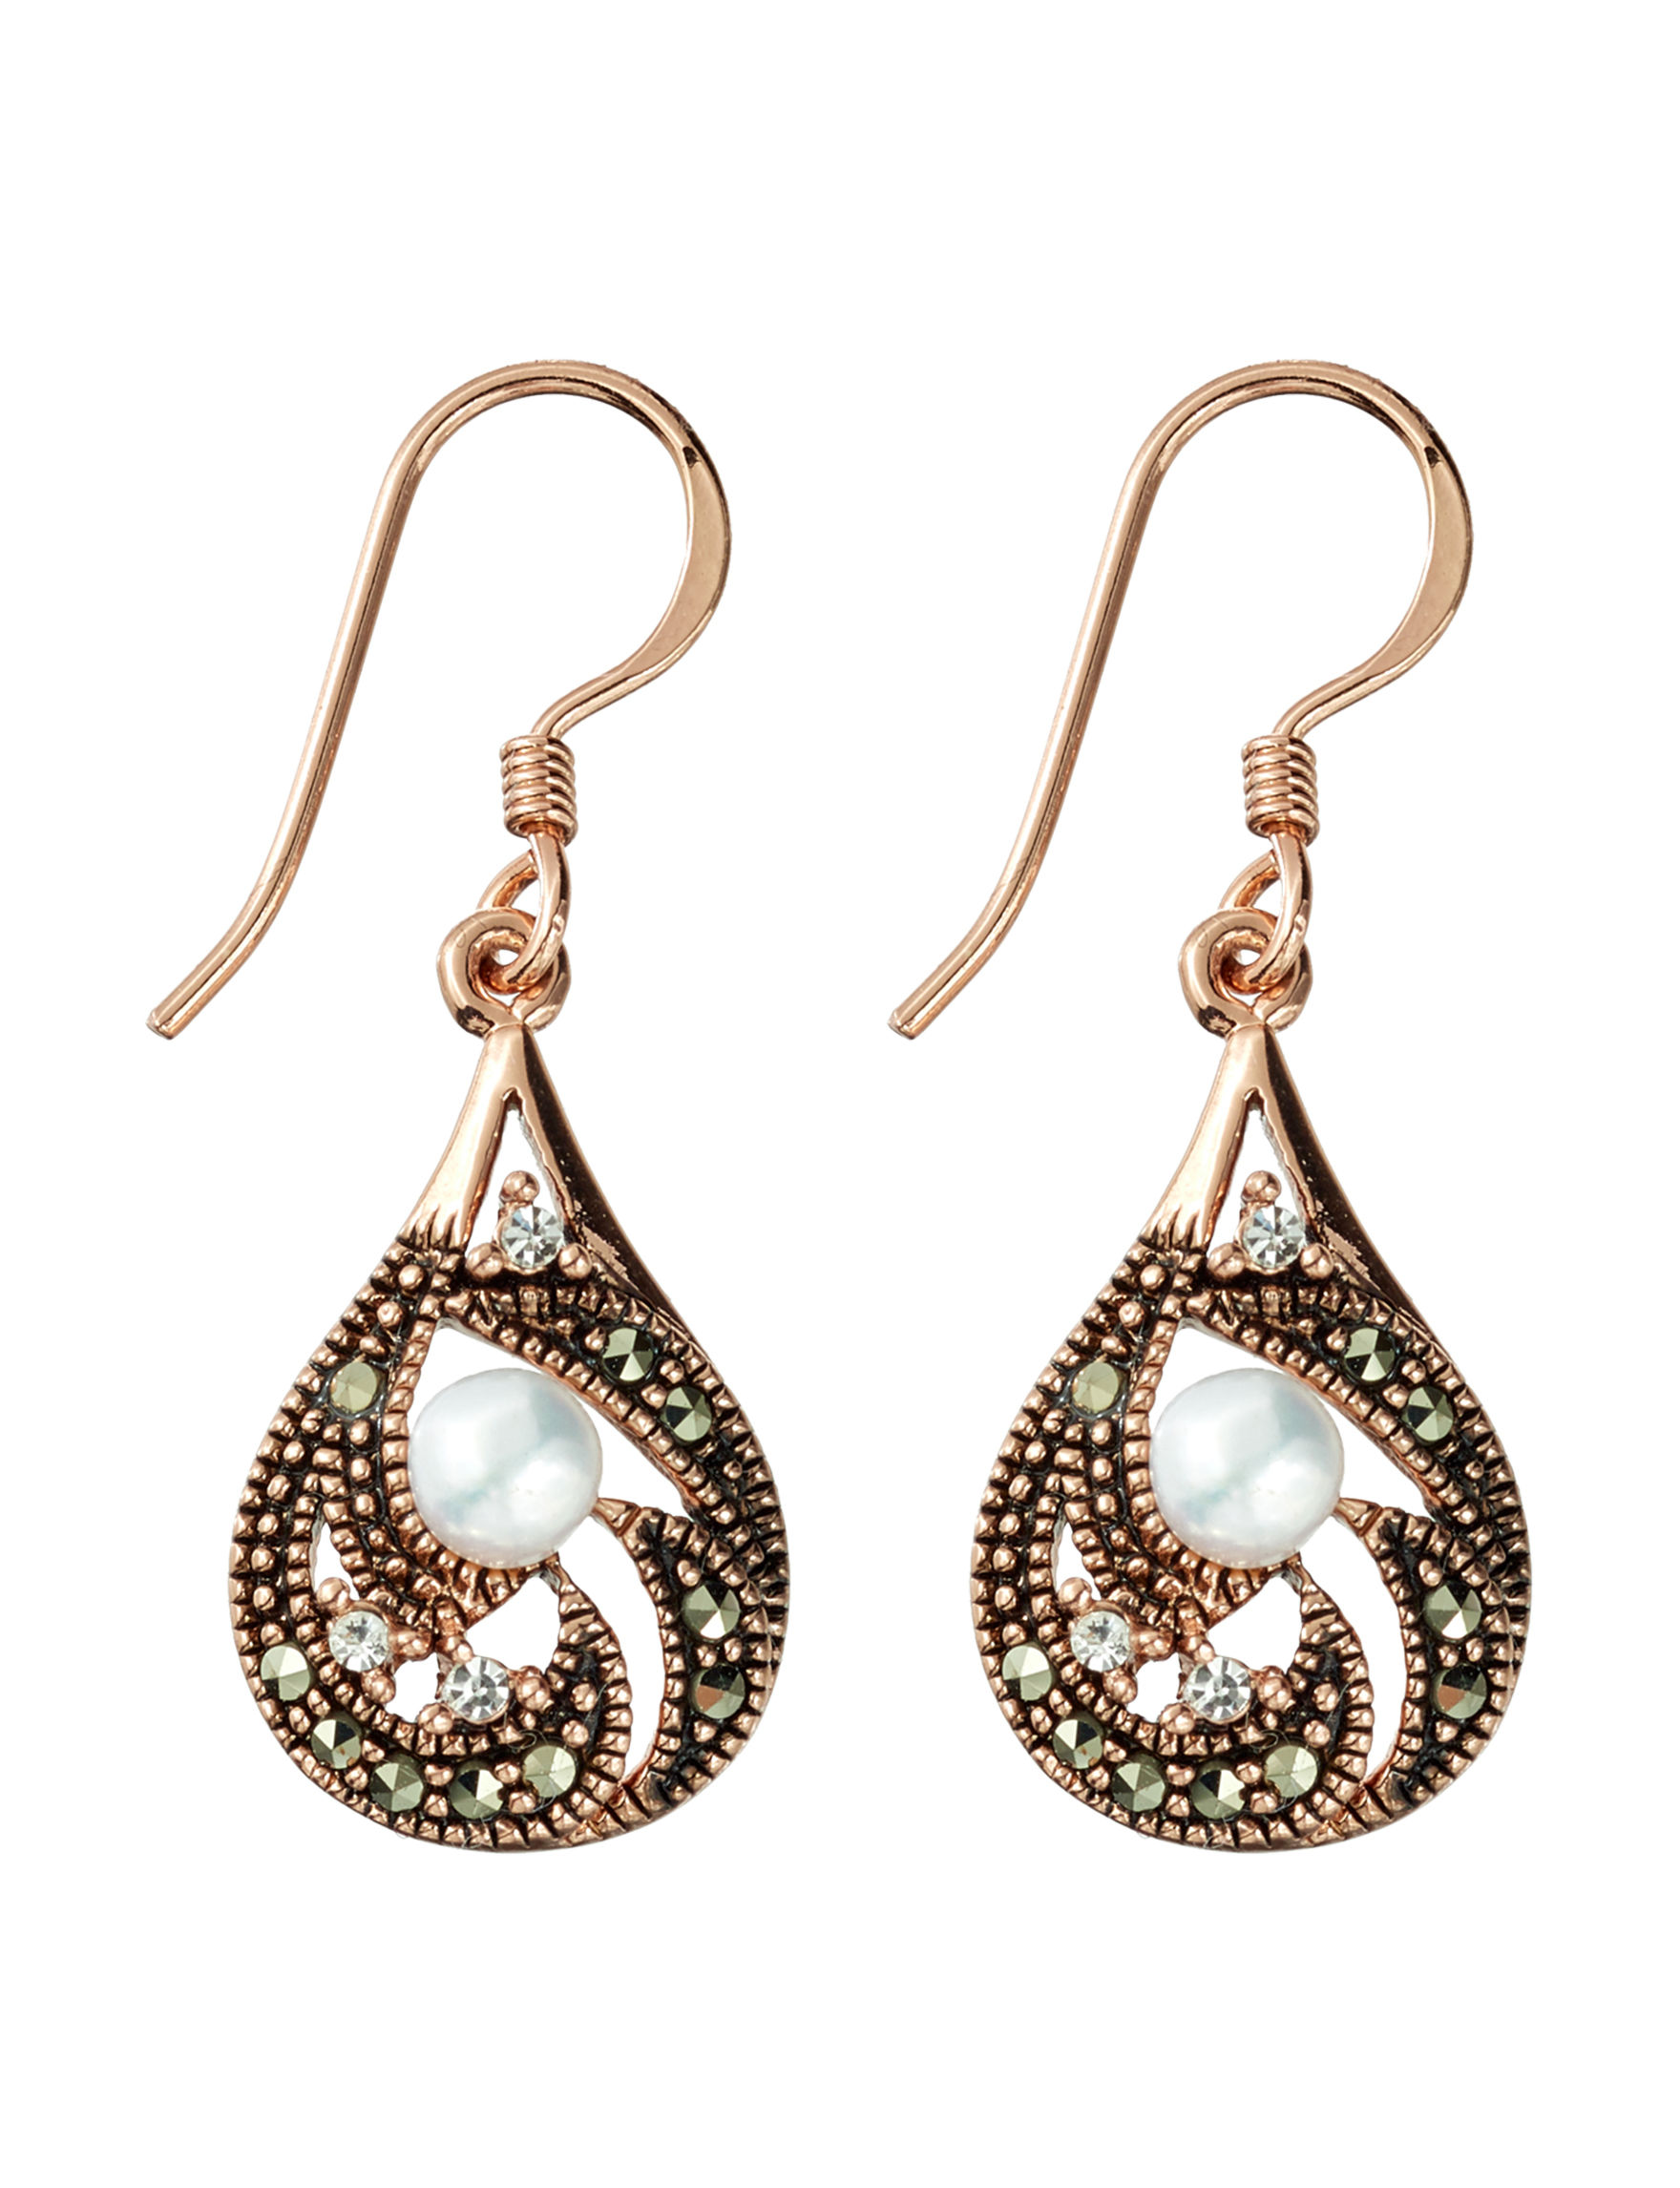 Marsala Gold / Black Drops Earrings Fine Jewelry